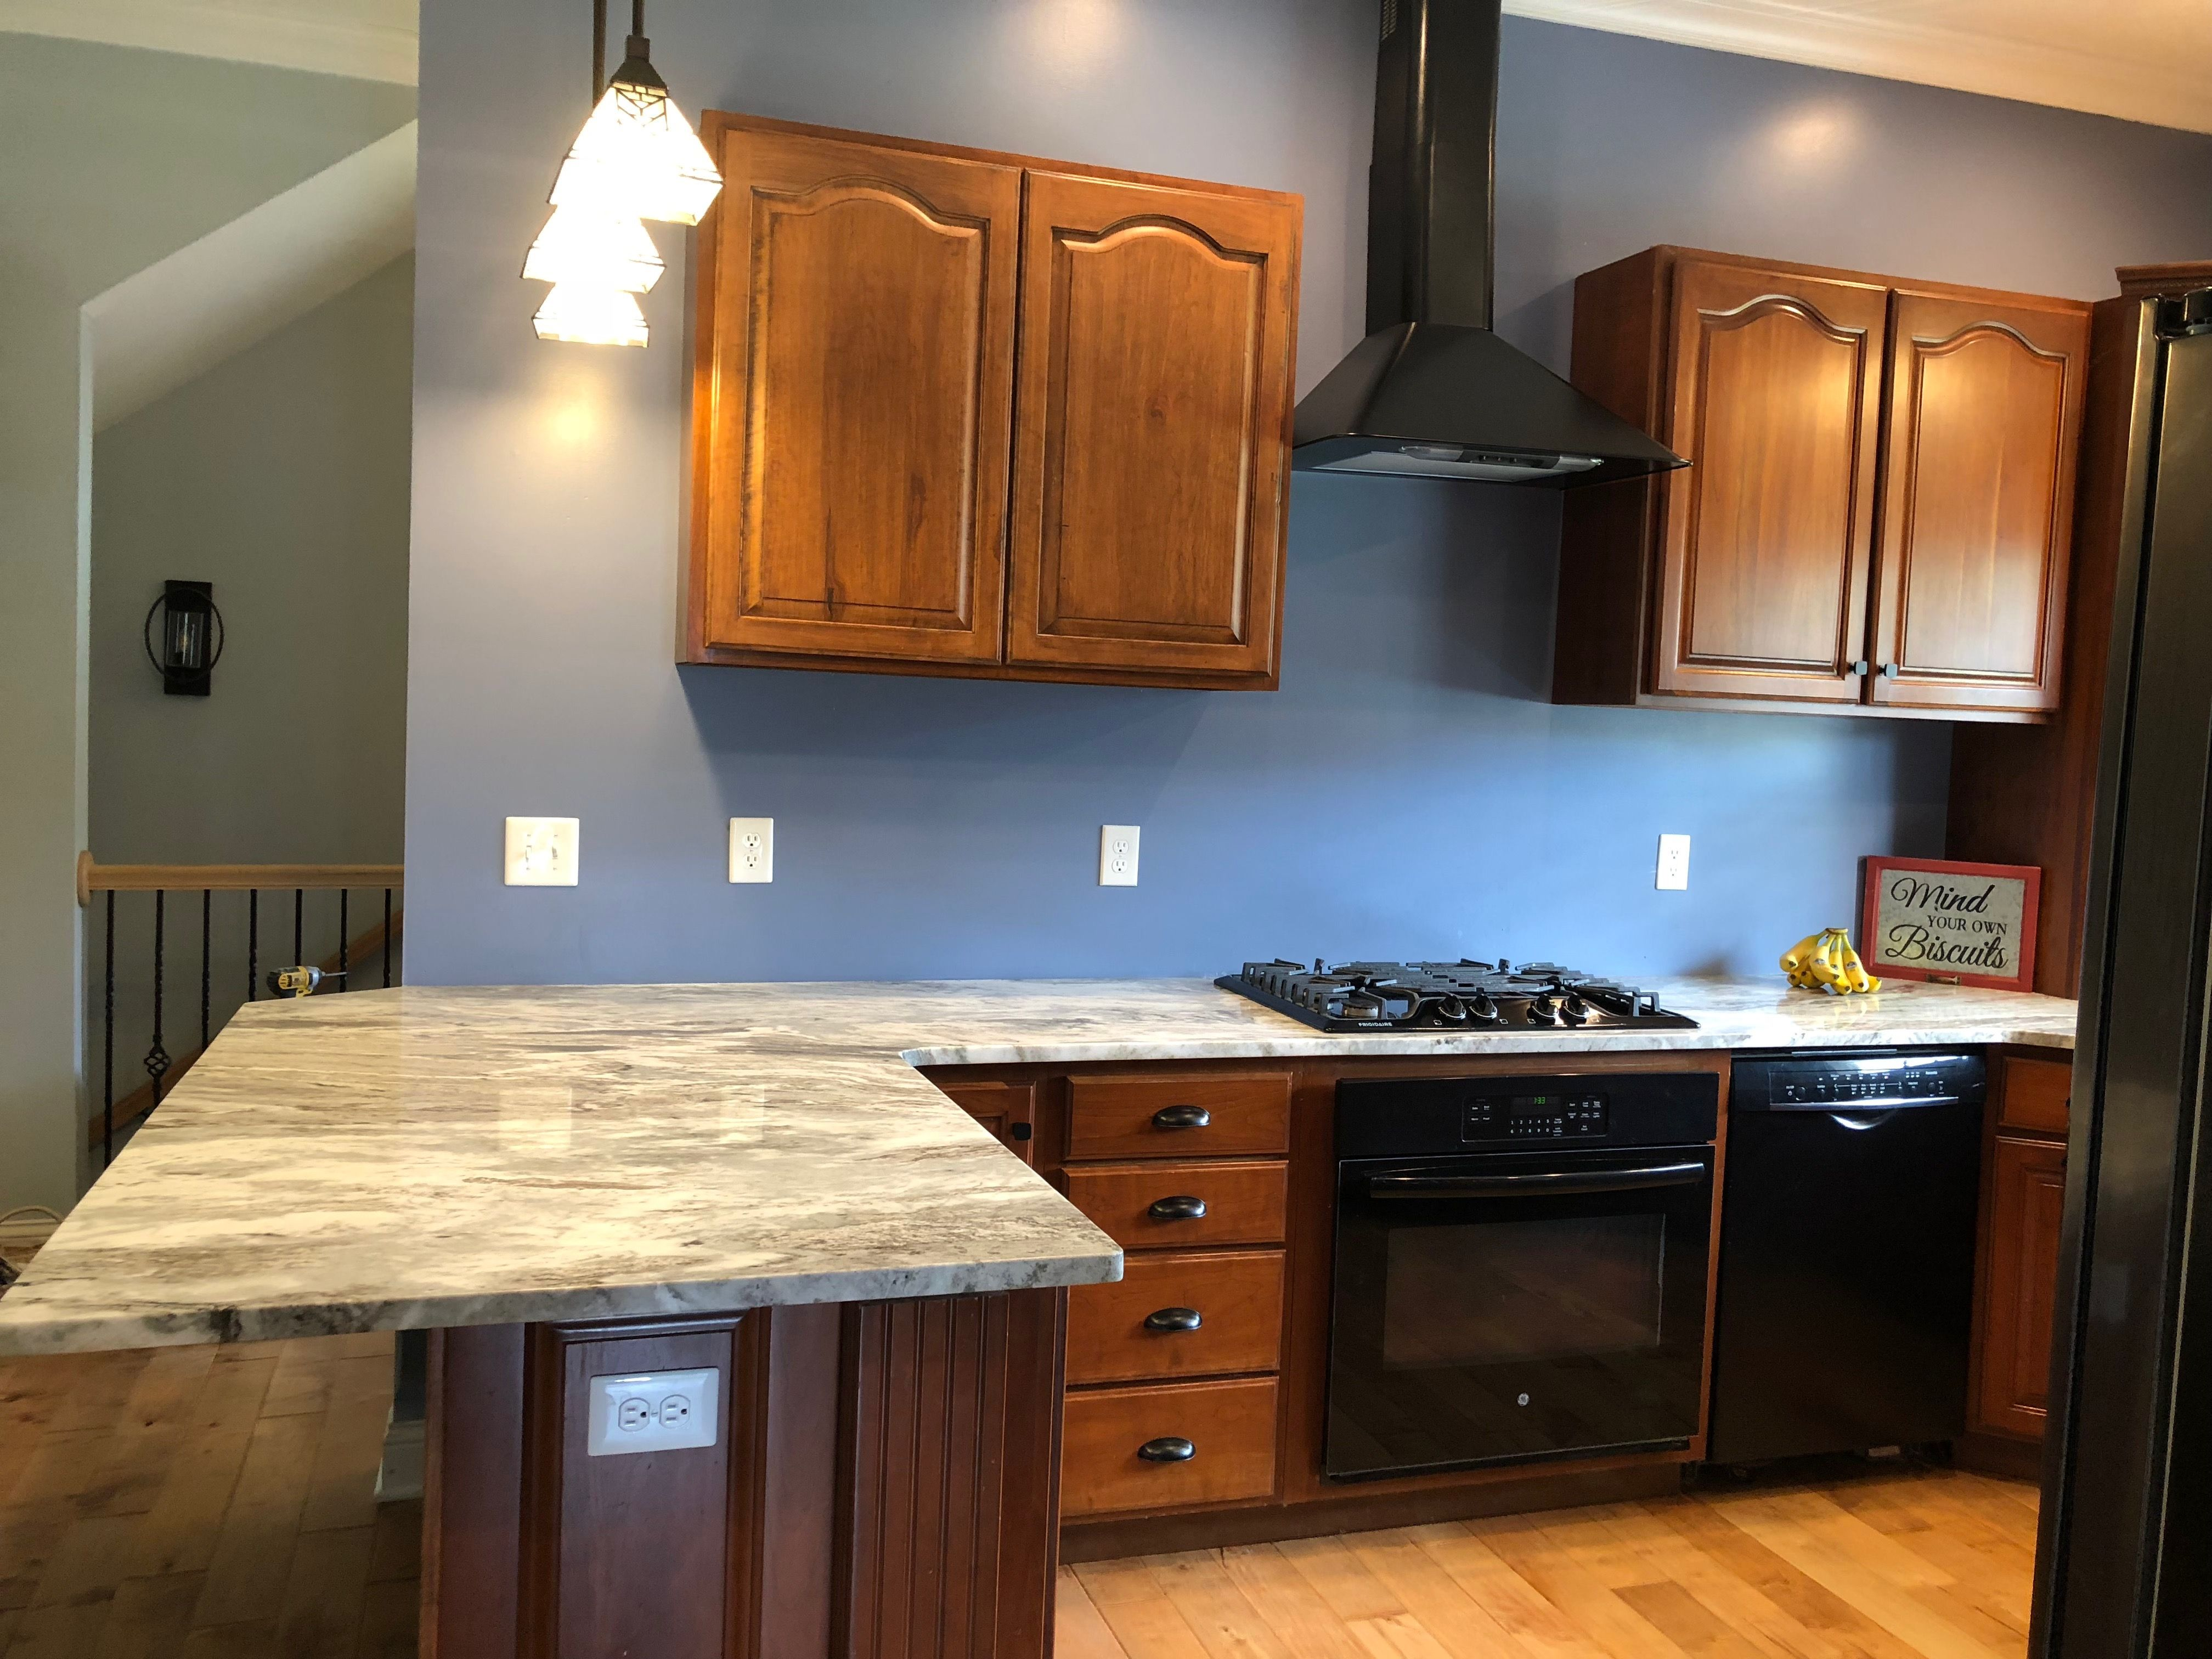 Matched Existing Cabinet For Cara And Carlos So Glad I Could Help Make Their House Complete Kitchen Cabinets Cabinet Home Decor